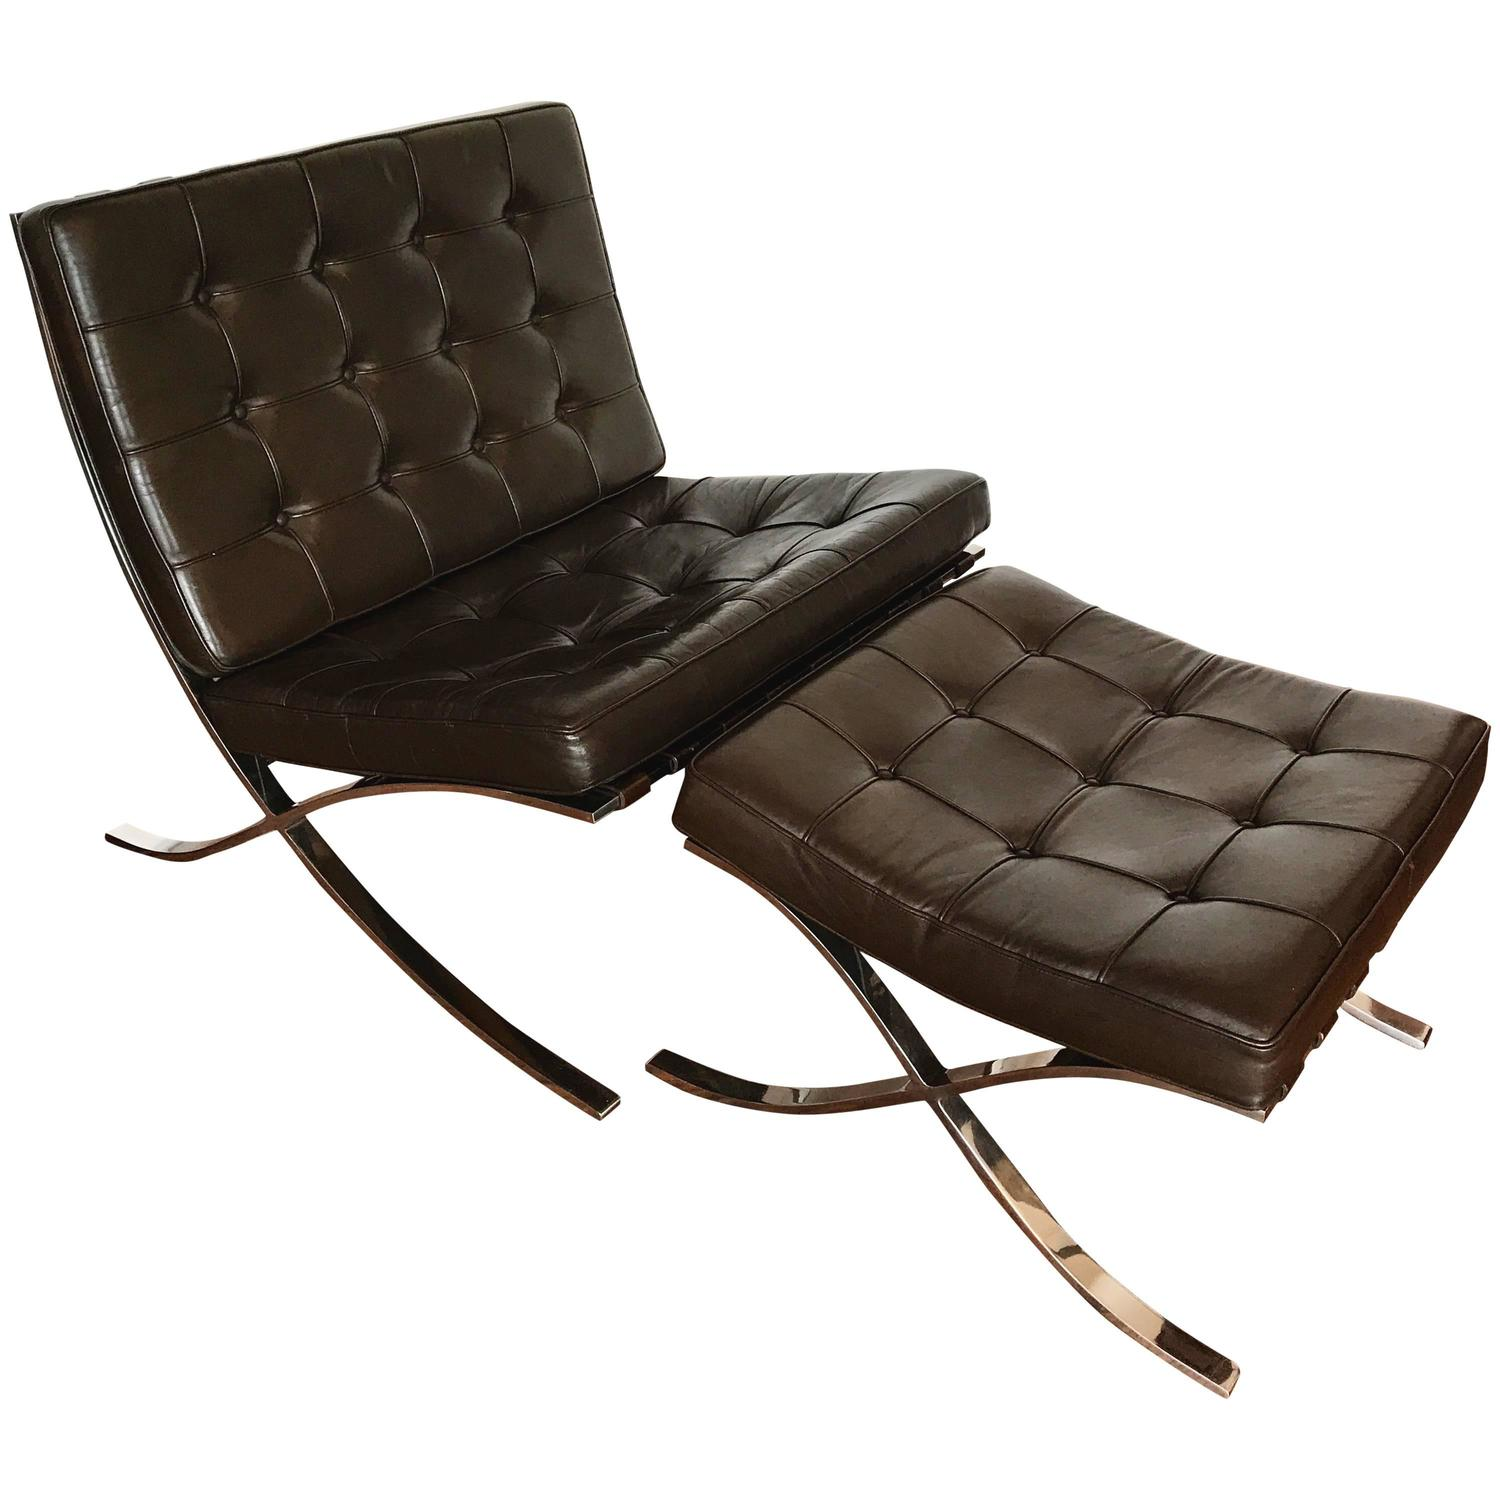 Mies van der rohe chair - Mocha Brown Leather Barcelona Chair Amp Ottoman By Ludwig Mies Van Der Rohe